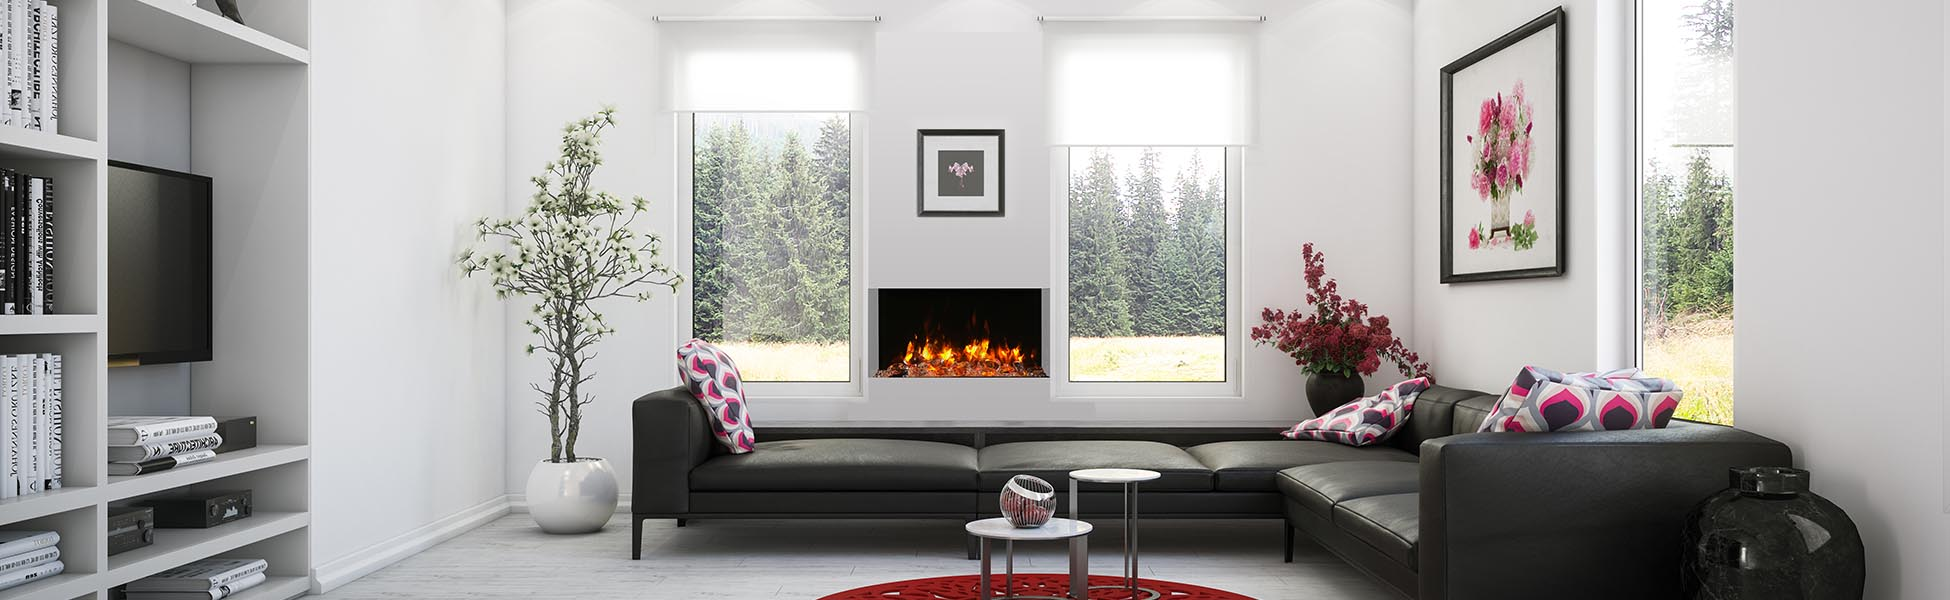 TRU-VIEW-SLIM 30 electric fireplace